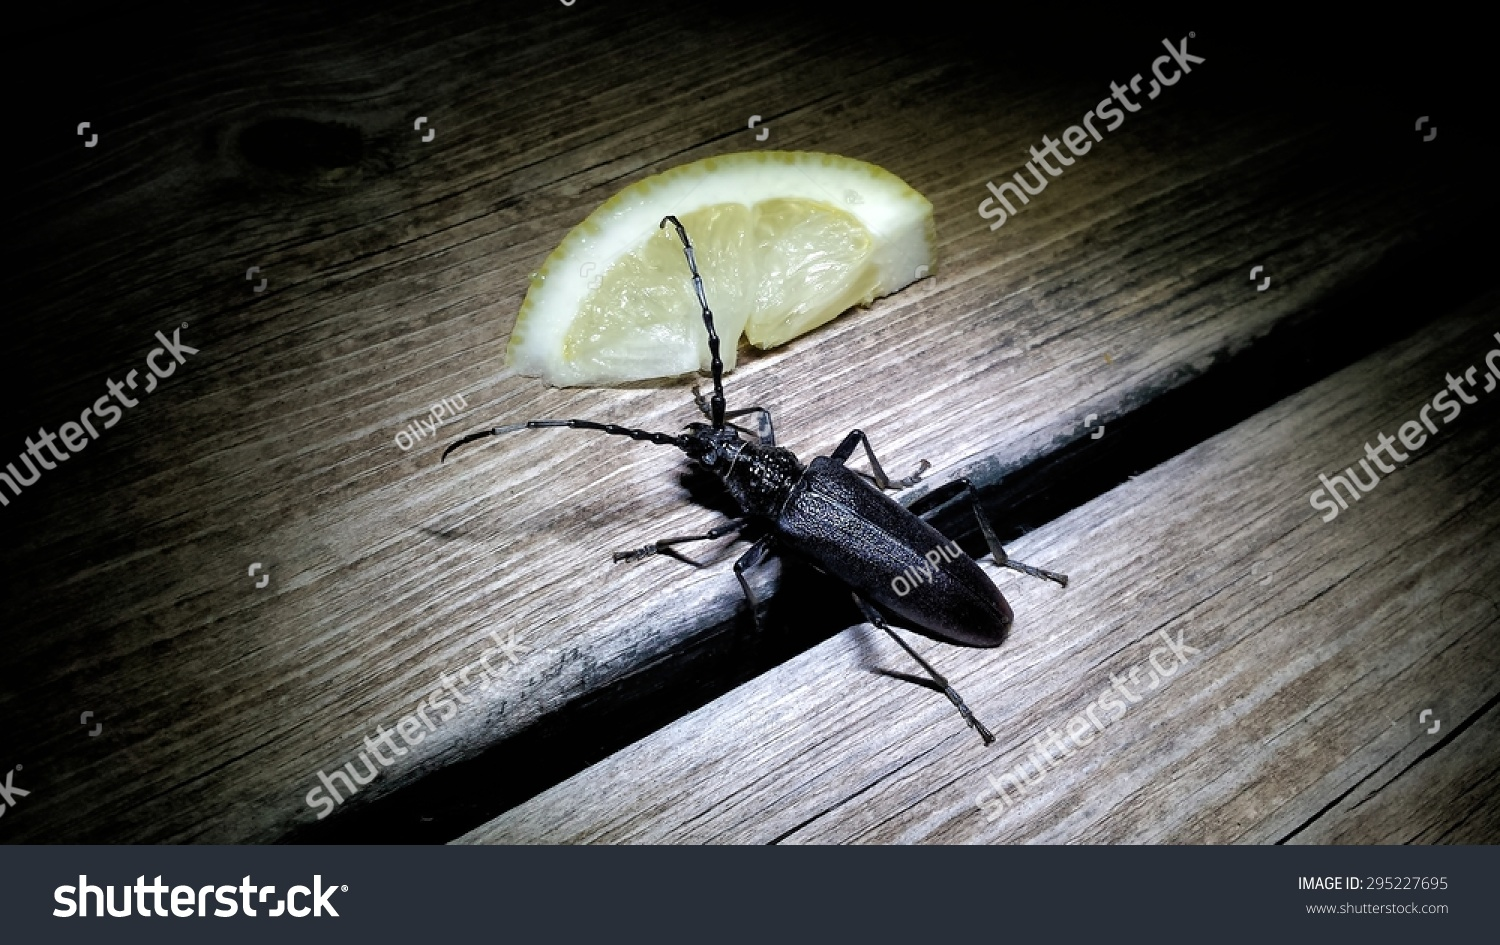 male great capricorn beetle cerambyx cerdo a cerambycidae longhorn beetle spotted at night. Black Bedroom Furniture Sets. Home Design Ideas